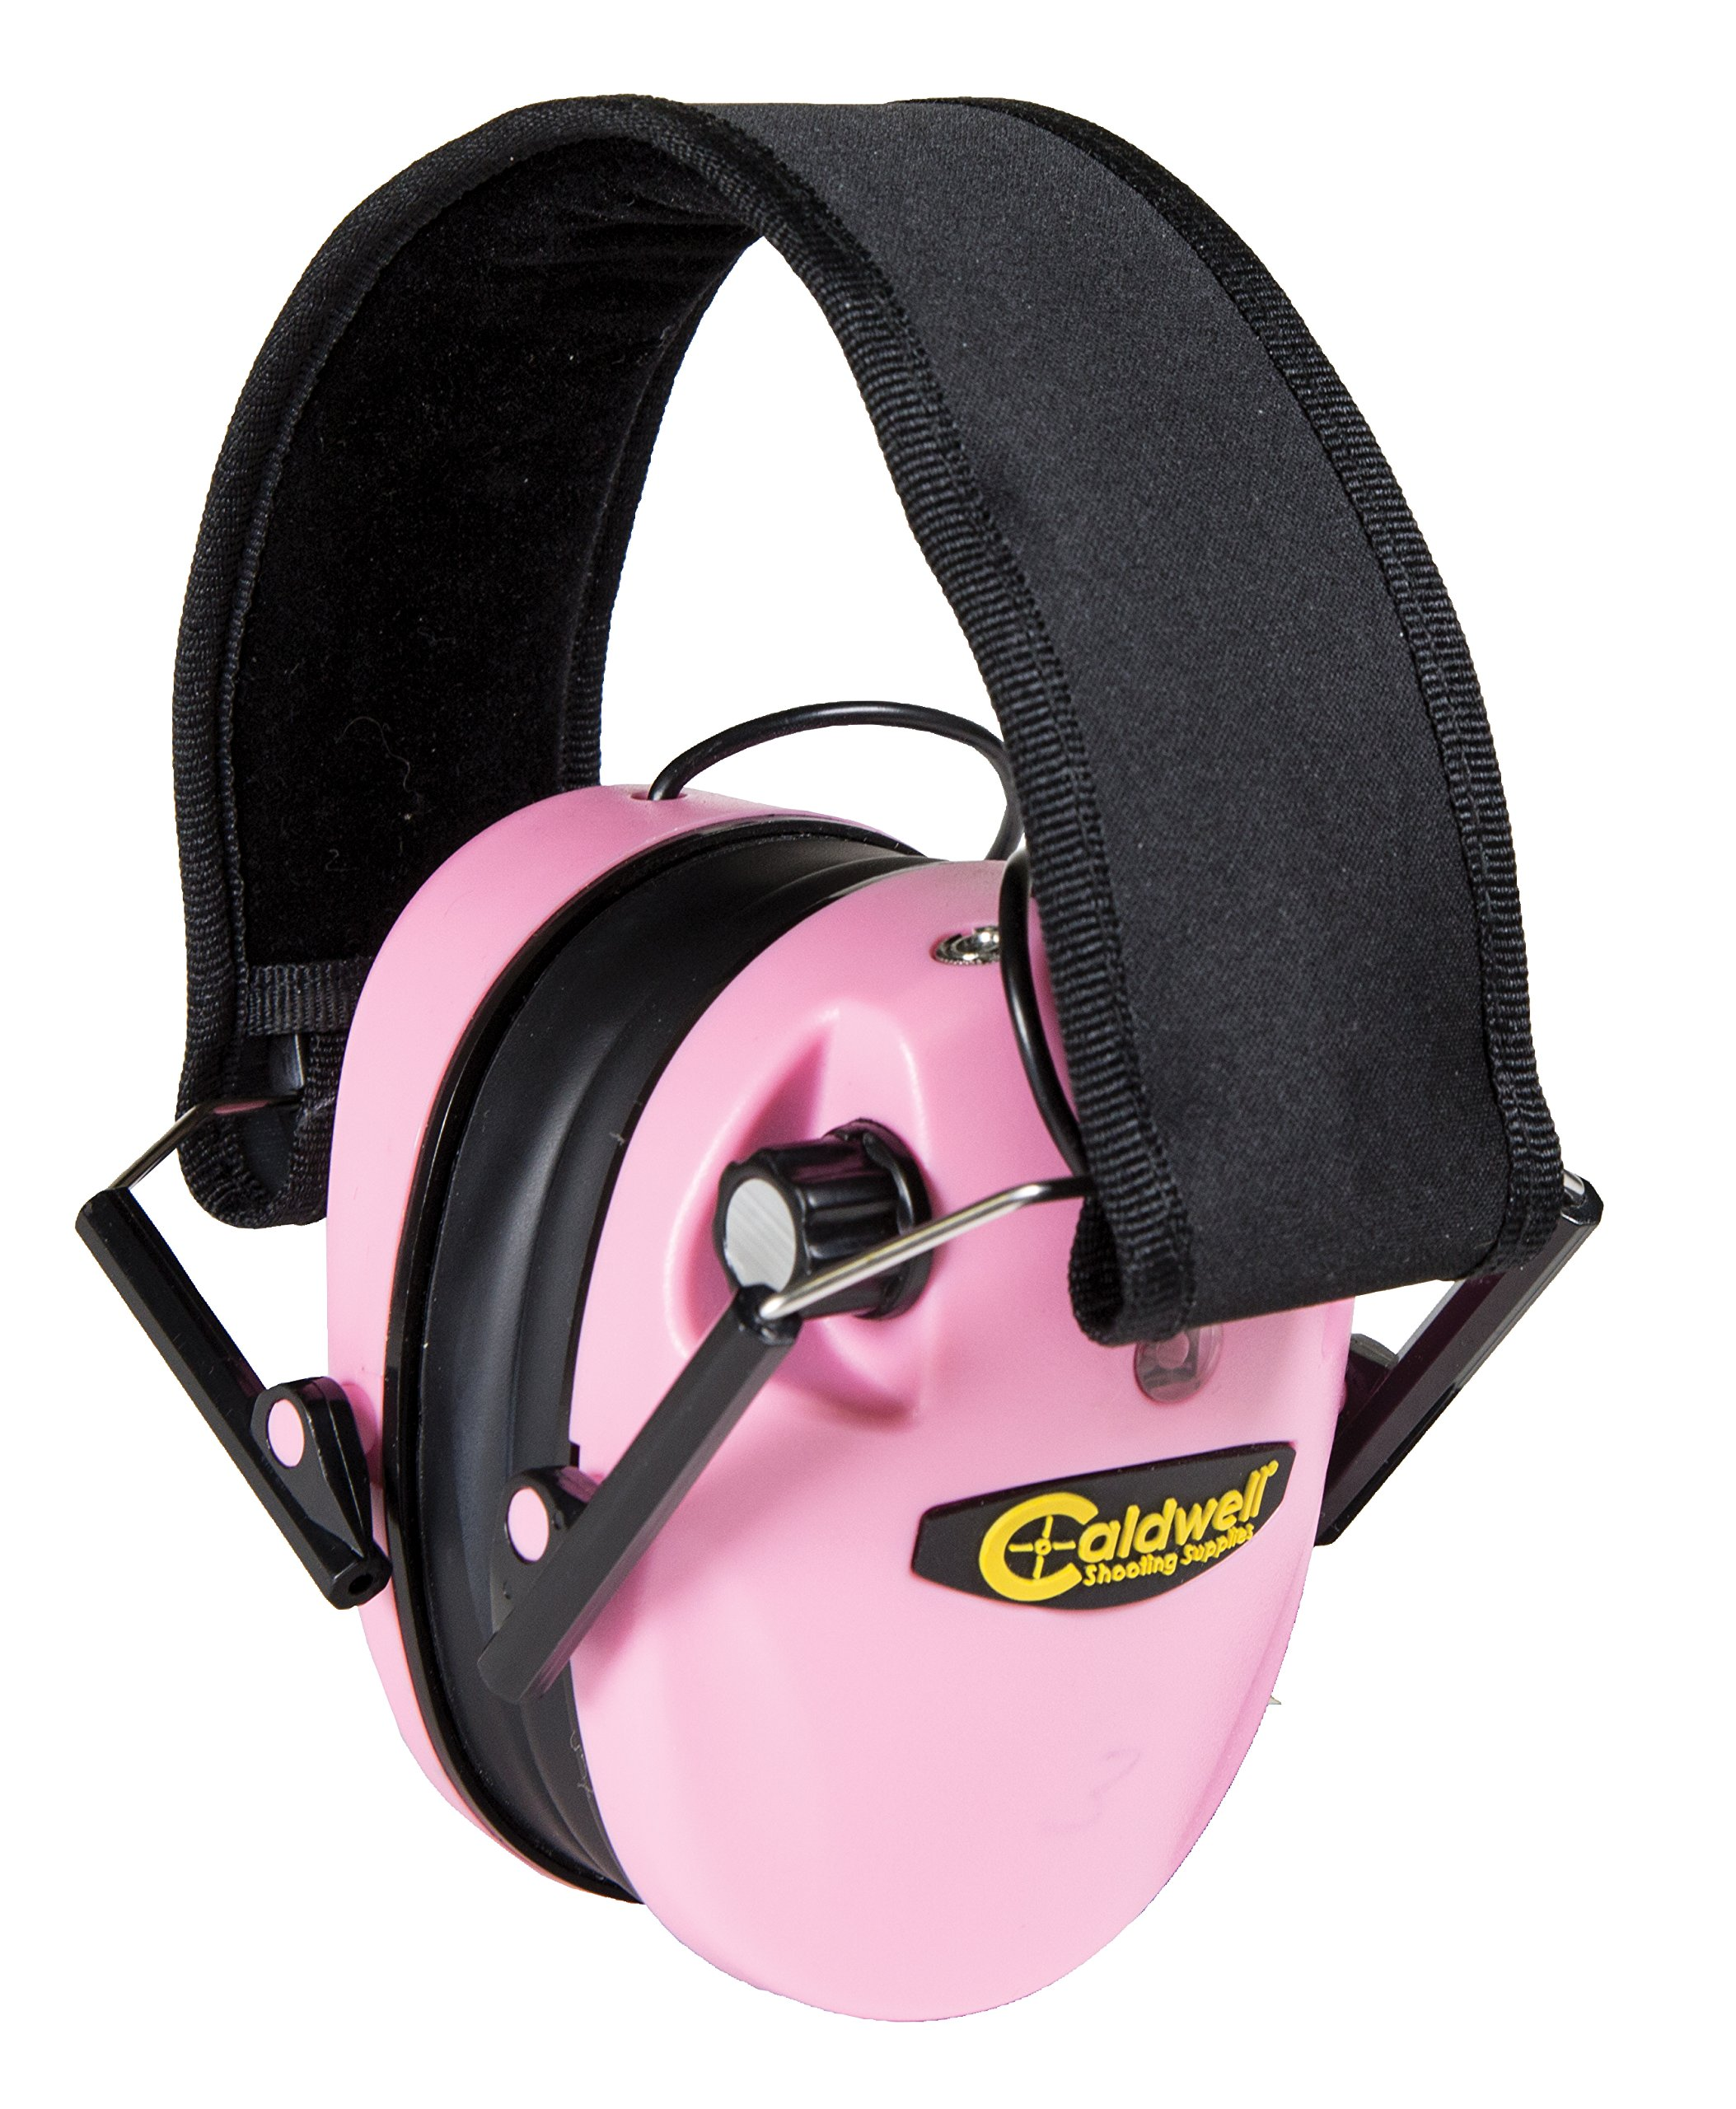 Caldwell E-Max Low Profile Electronic 23 NRR Hearing Protection with Sound Amplification and Adjustable Earmuffs for Shooting, Hunting and Range, Pink by Caldwell